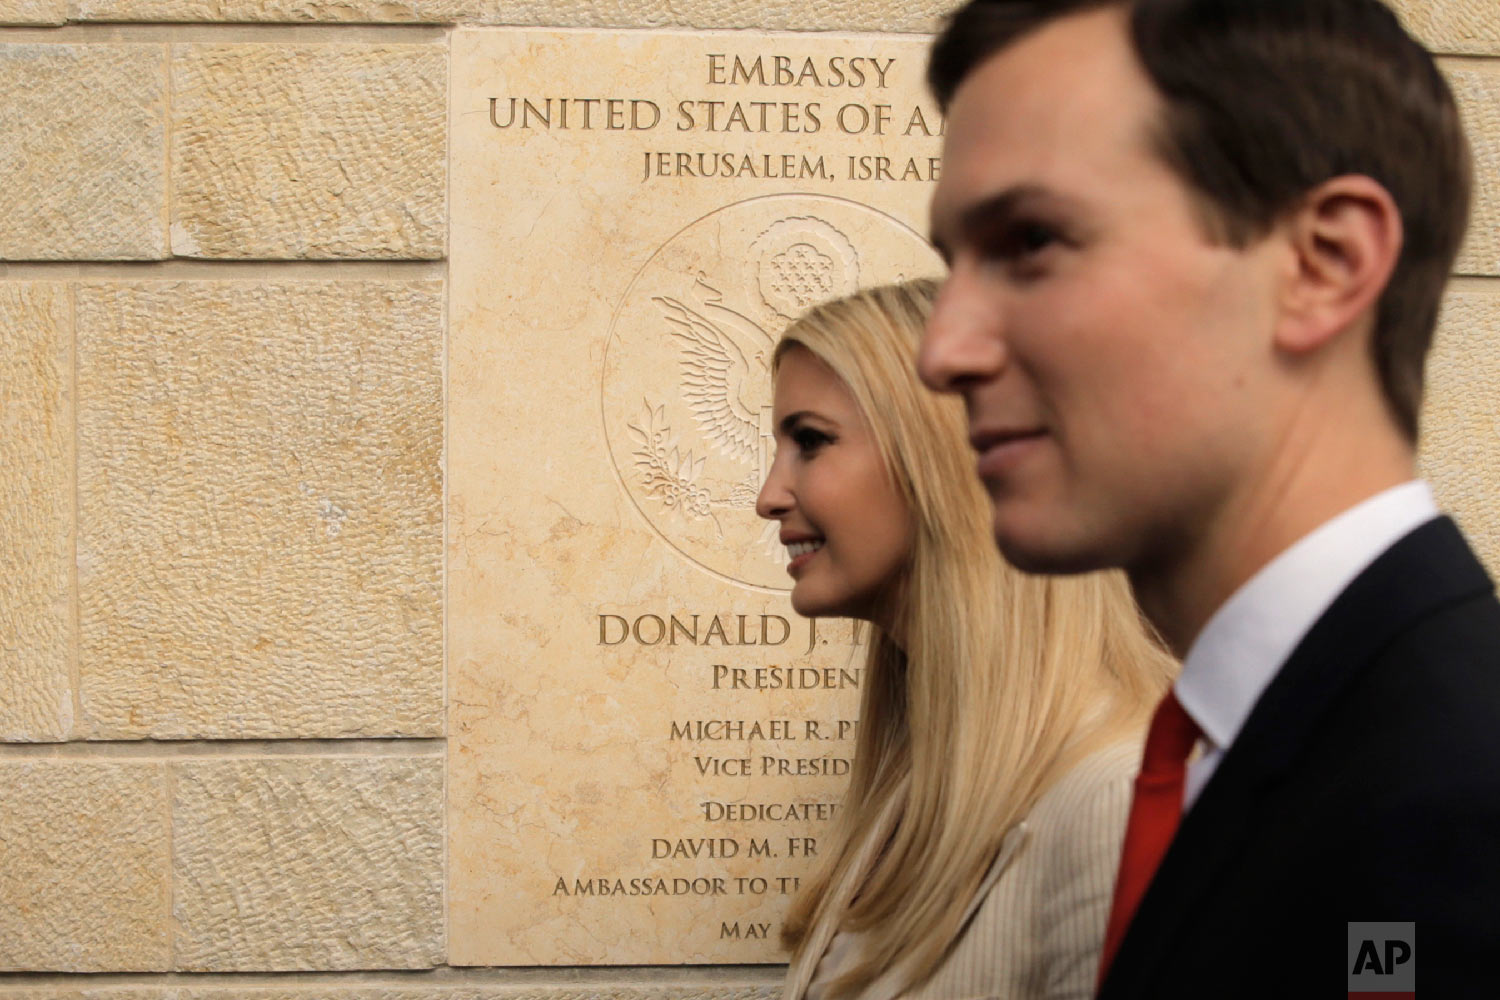 U.S. President Donald Trump's daughter Ivanka, left, and White House senior adviser Jared Kushner attends the opening ceremony of the new U.S. Embassy in Jerusalem, Monday, May 14, 2018. (AP Photo/Sebastian Scheiner)